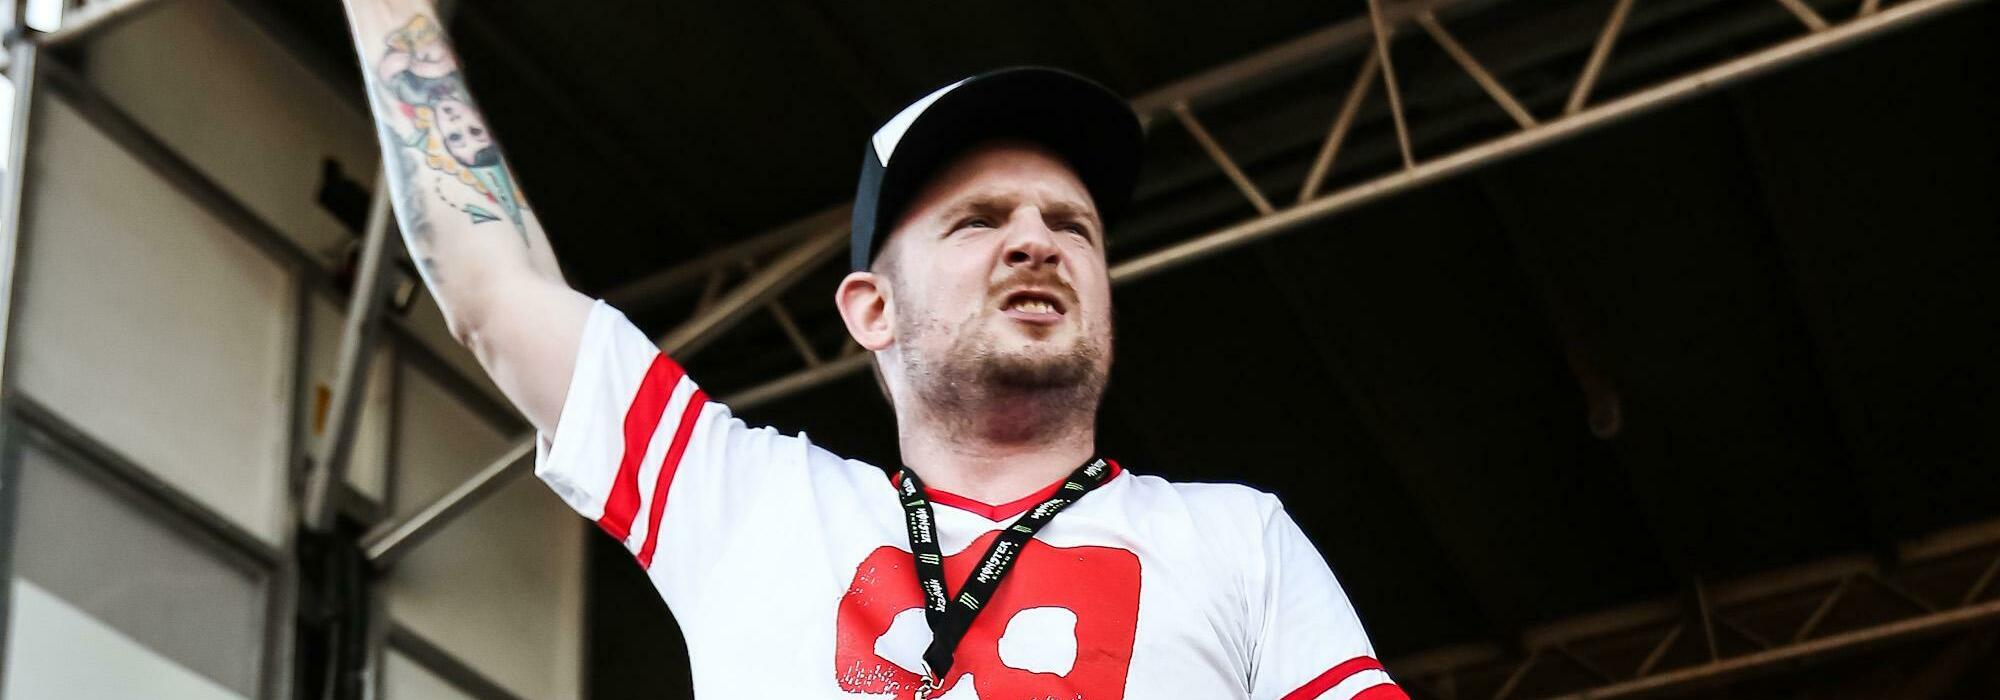 A Mac Lethal live event